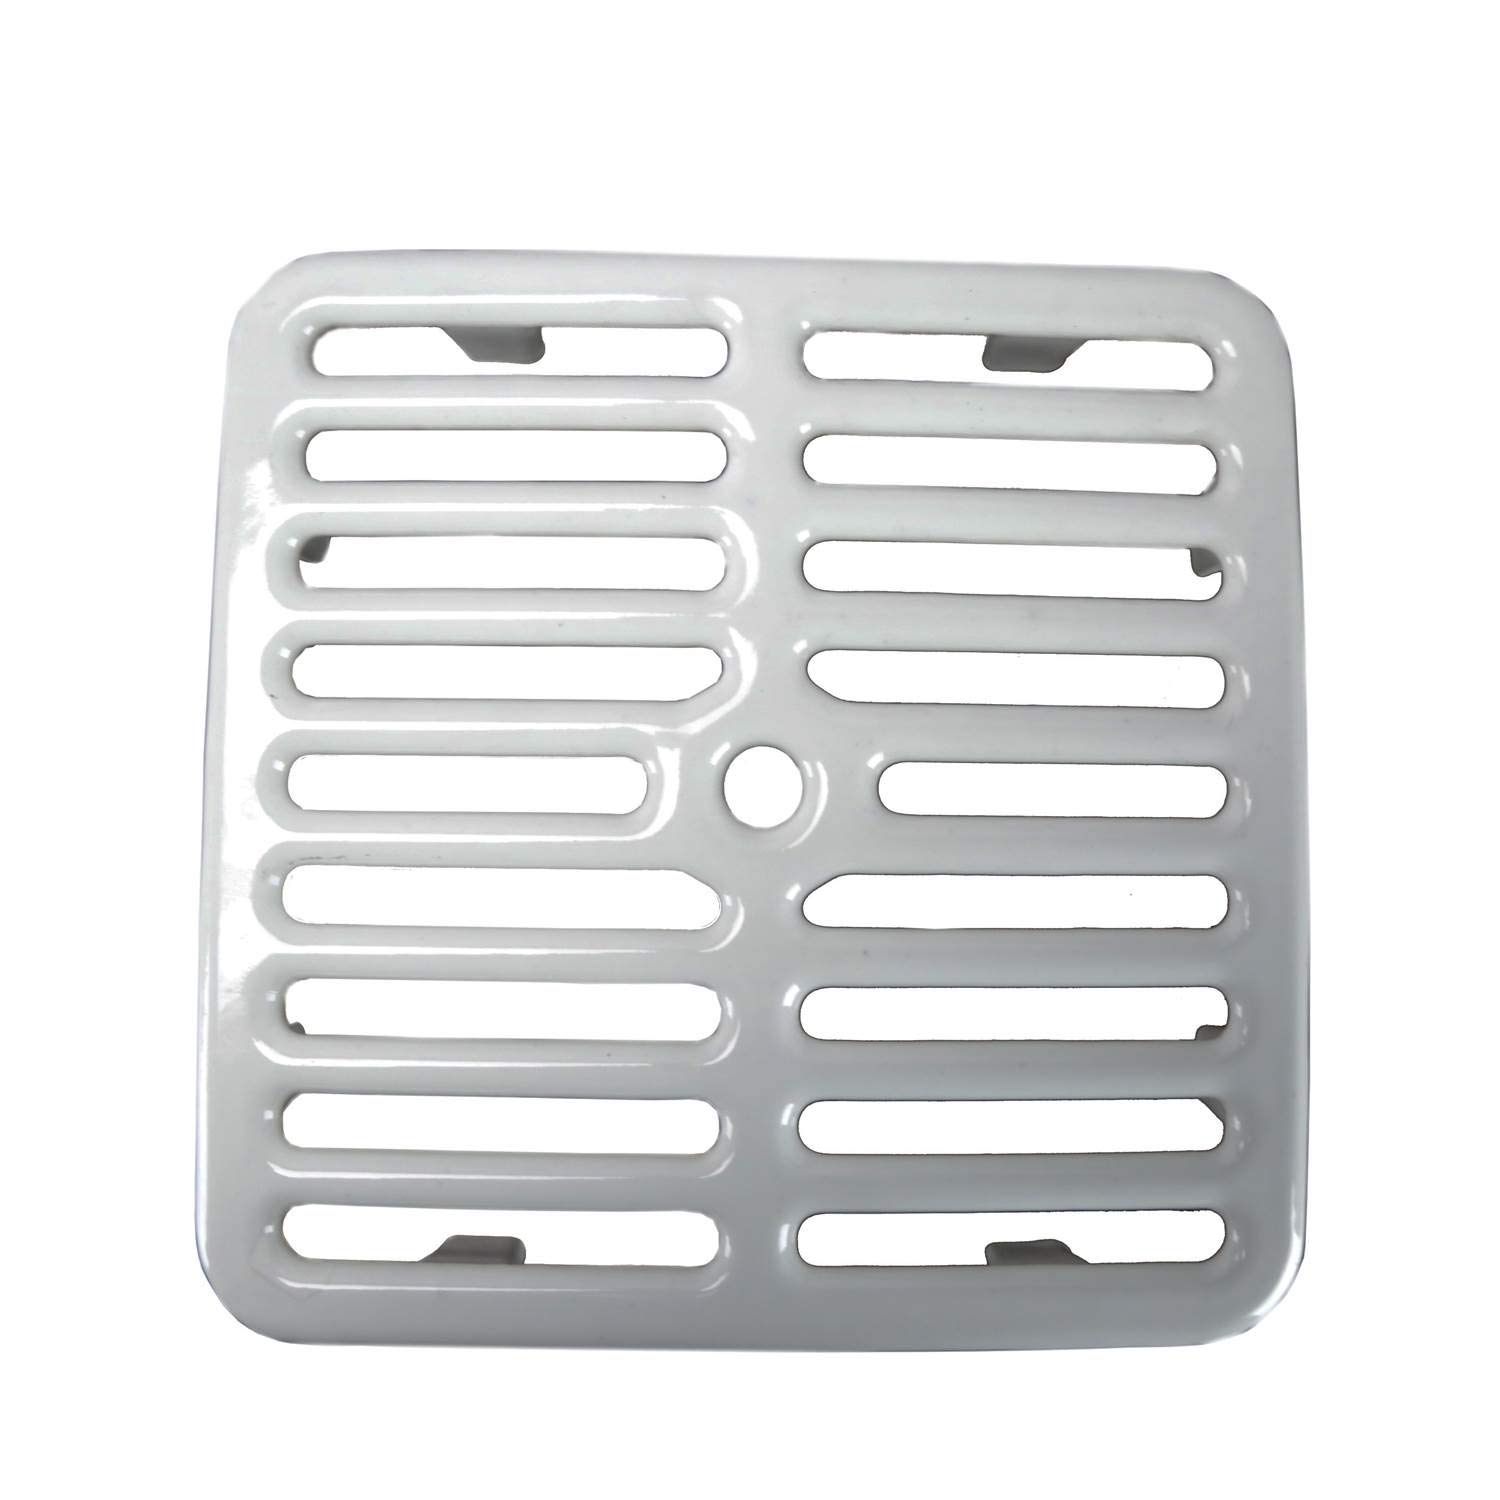 """GSW Cast Iron Porcelain Floor Sink Top Grate with Ceramic Surface FS-TF, 9-⅜"""" x 9-⅜"""" x 1-¼"""" - Perfect for Restaurant, Bar, Buffet (Full Size)"""